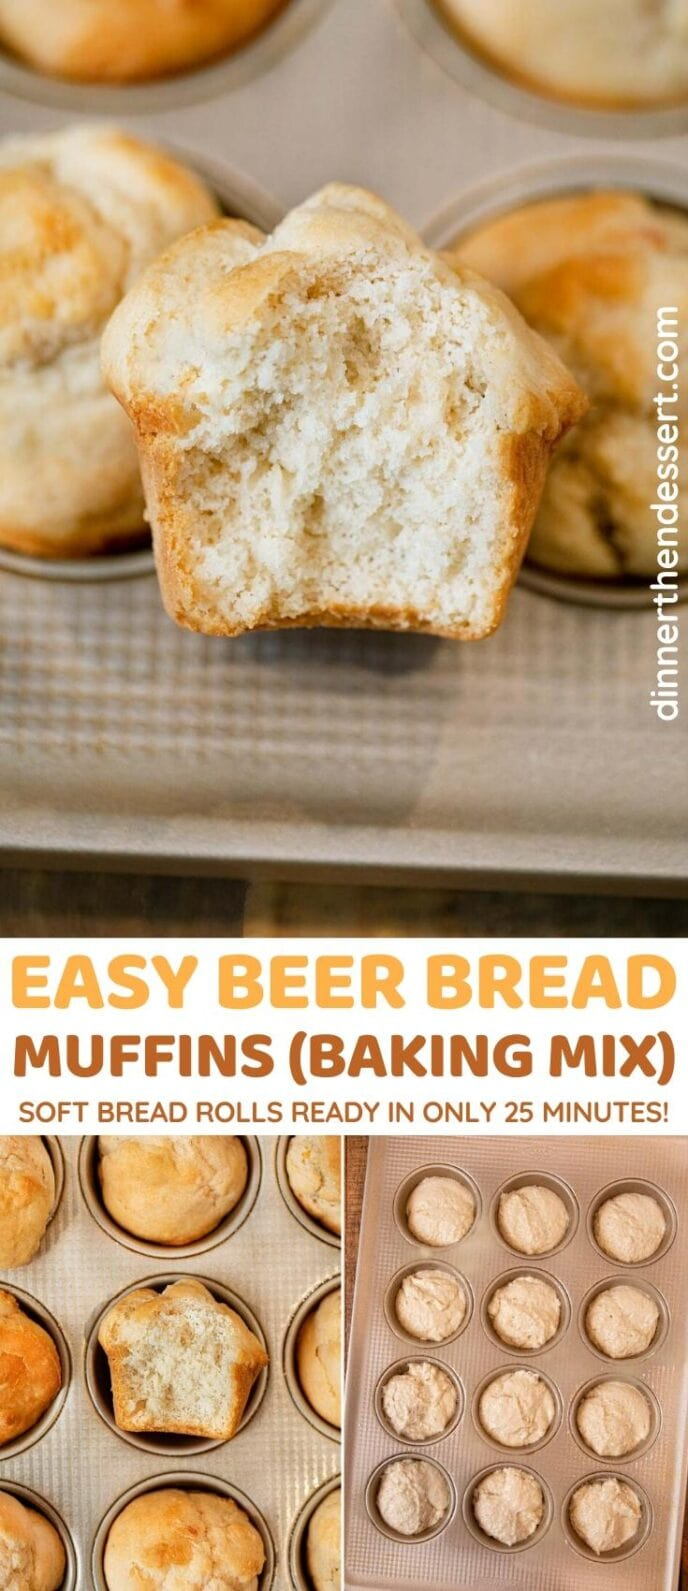 Beer Bread Muffins collage